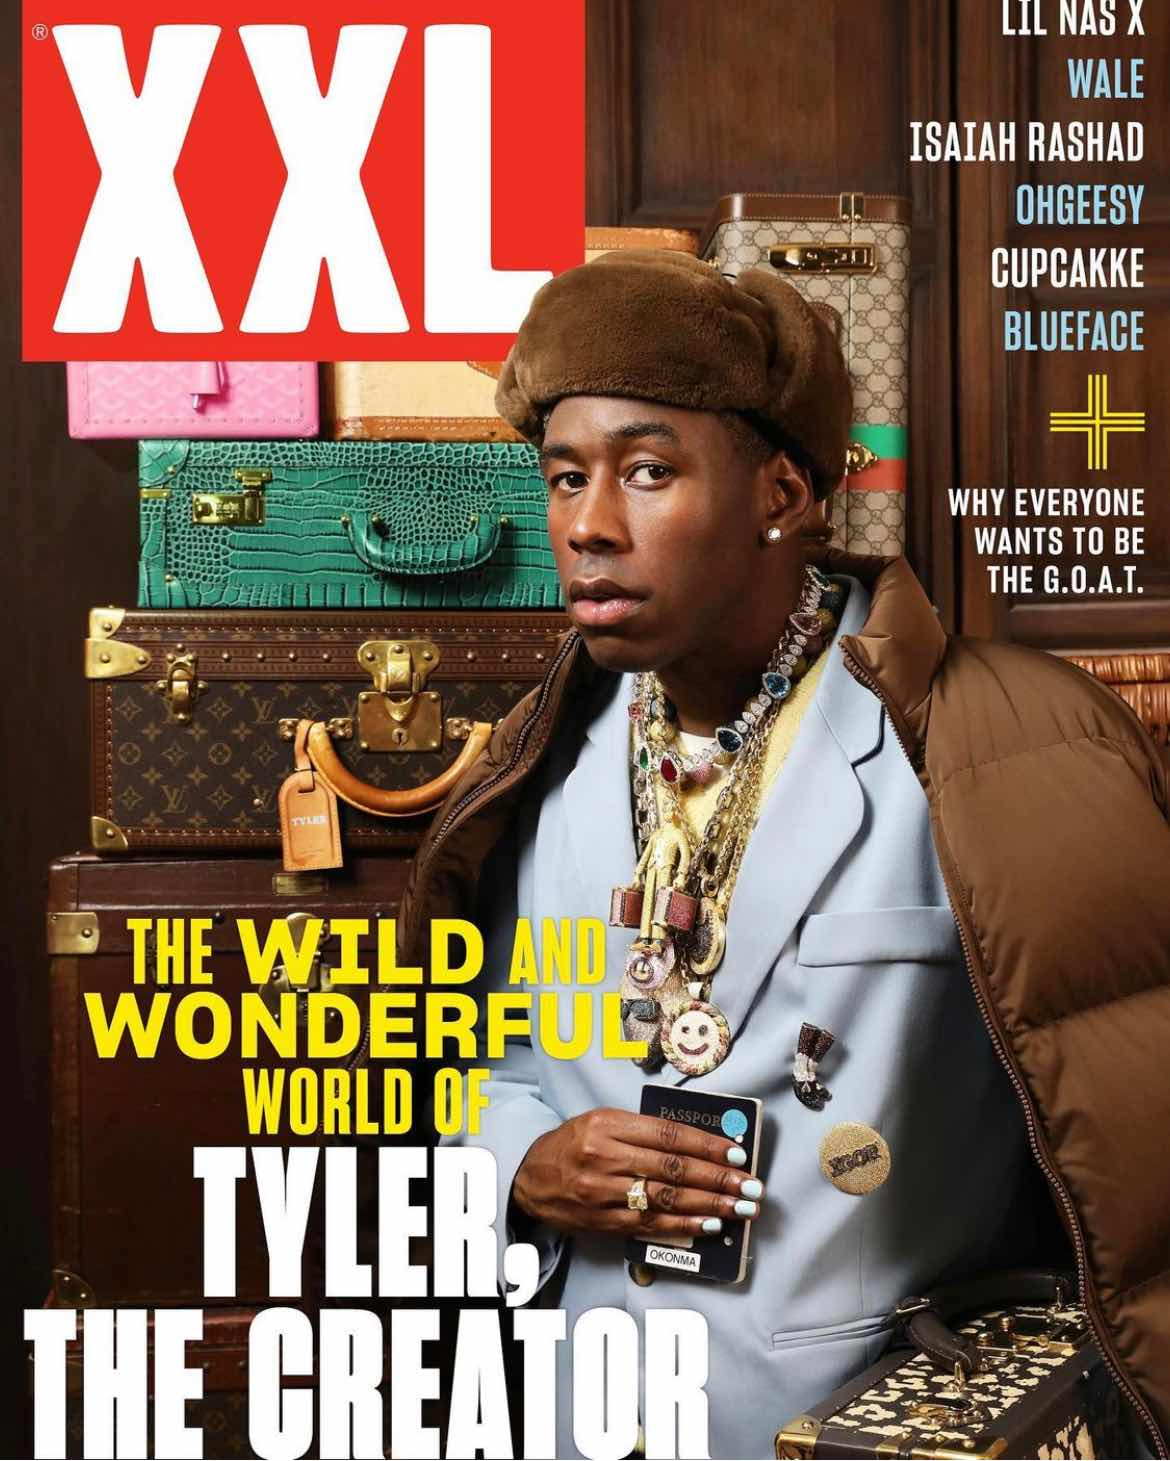 Tyler The Creator for XXL